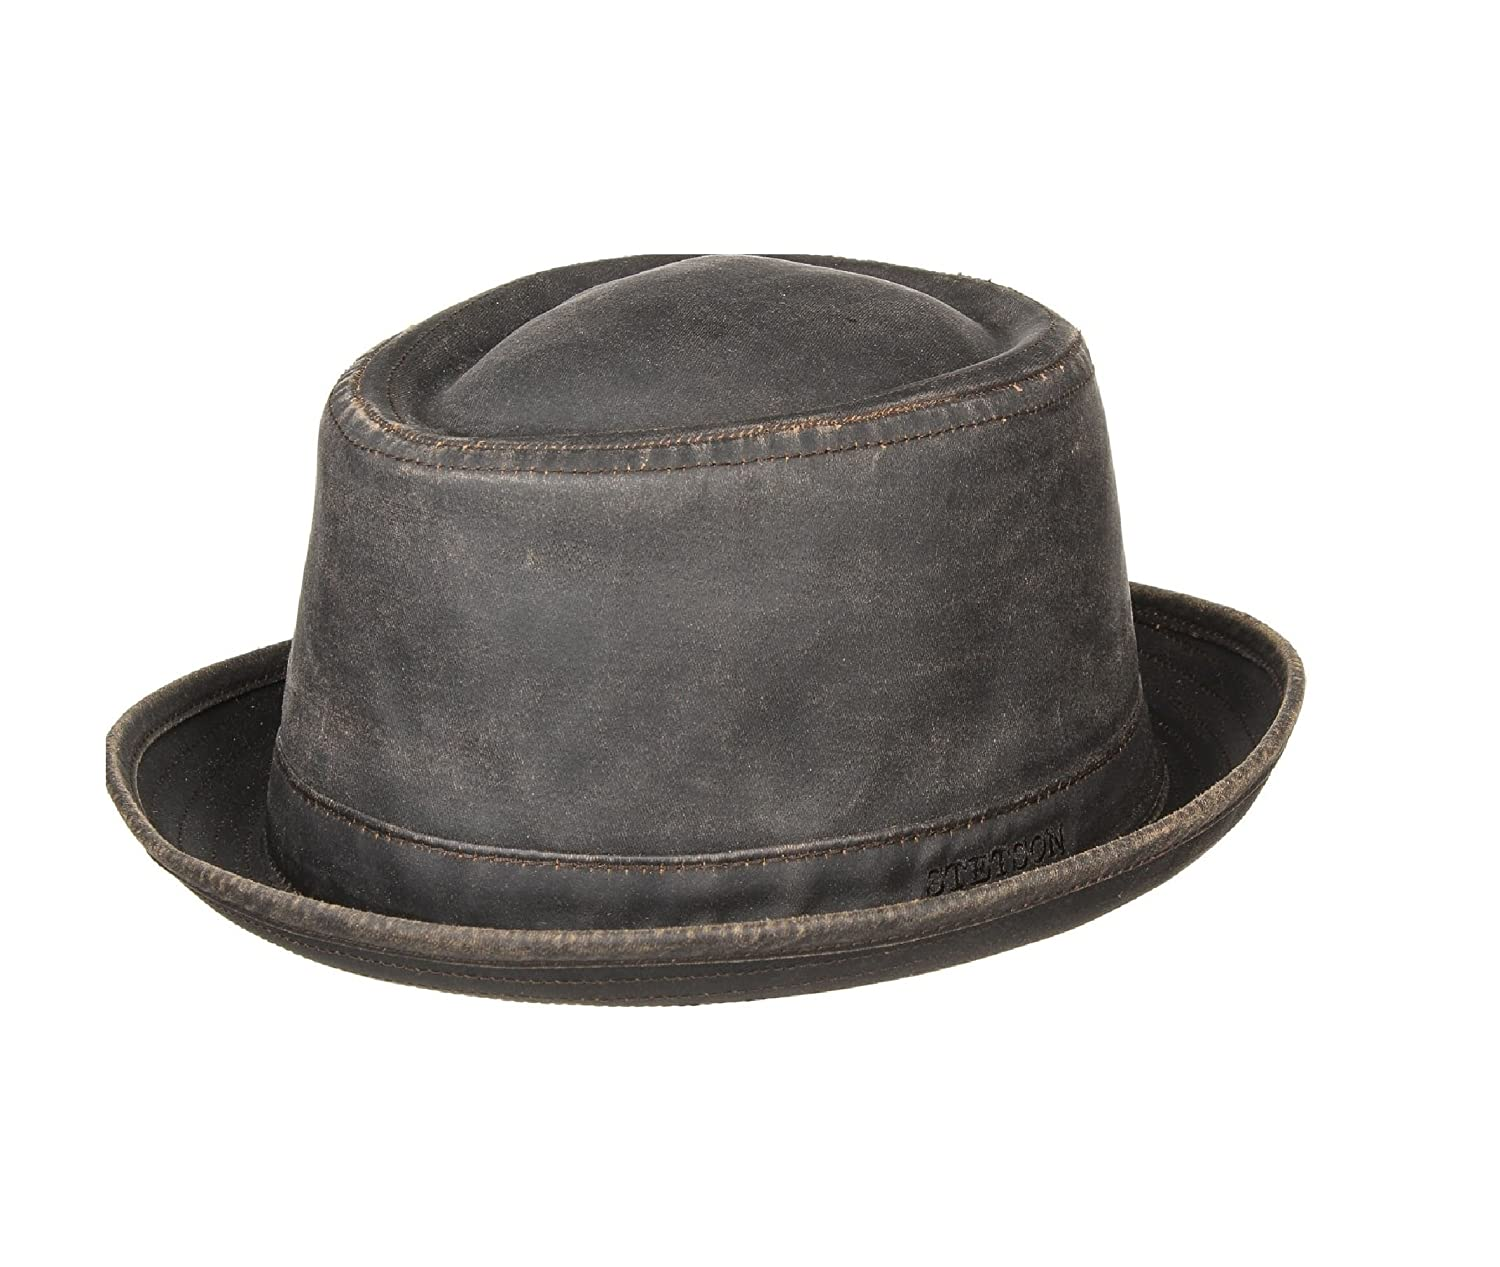 Stetson ODenton' Distressed Faux Leather Pork Pie Trilby 1611101